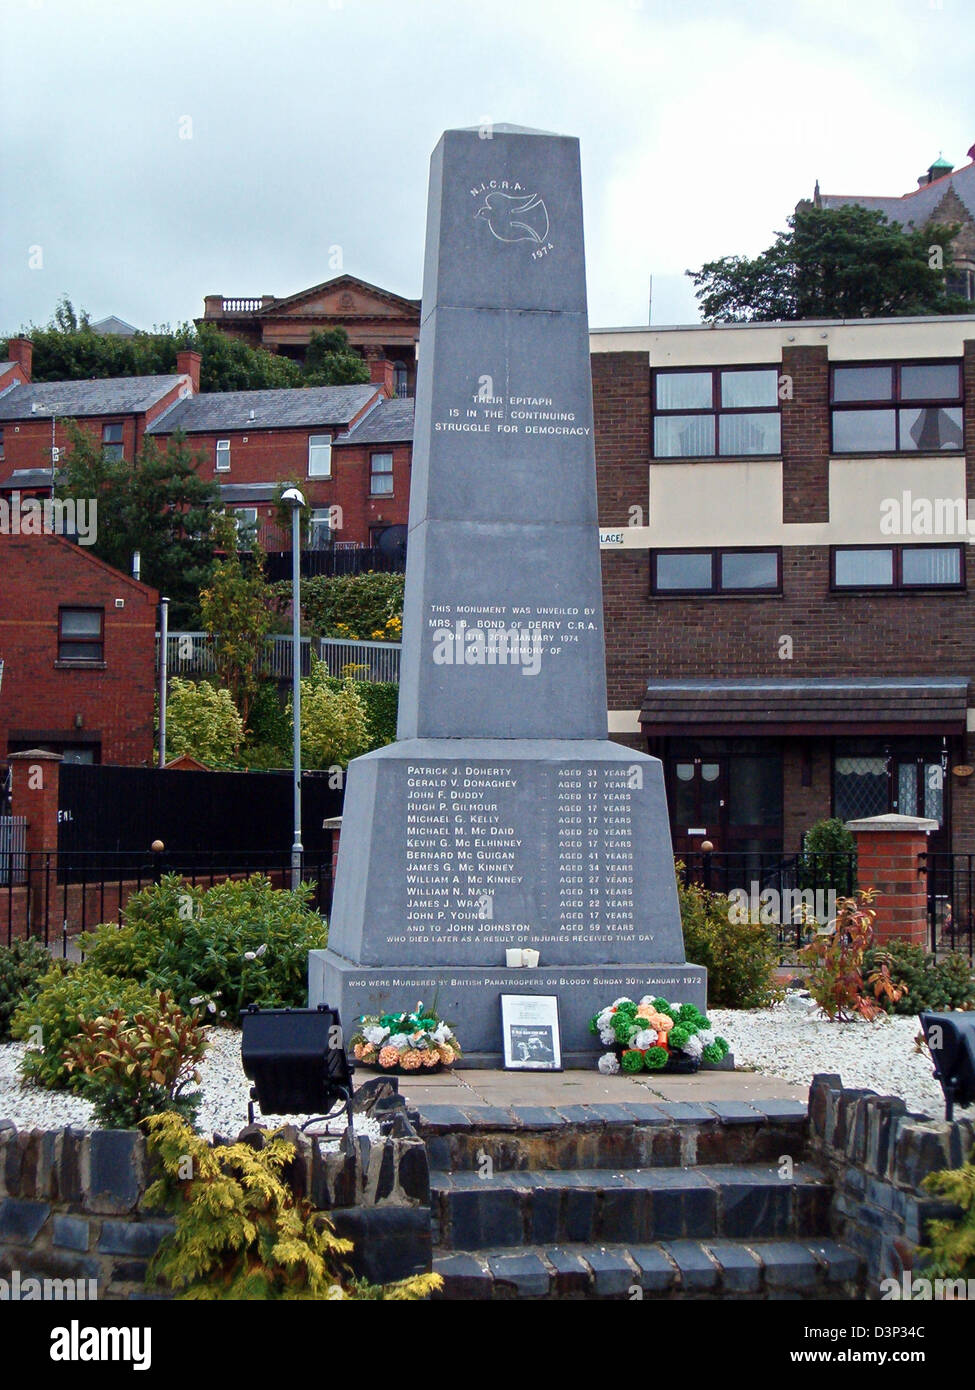 The picture shows the memorial for the 'Bloody Sunday' of 1972 in Londonderry, Northern Ireland, 09 August - Stock Image